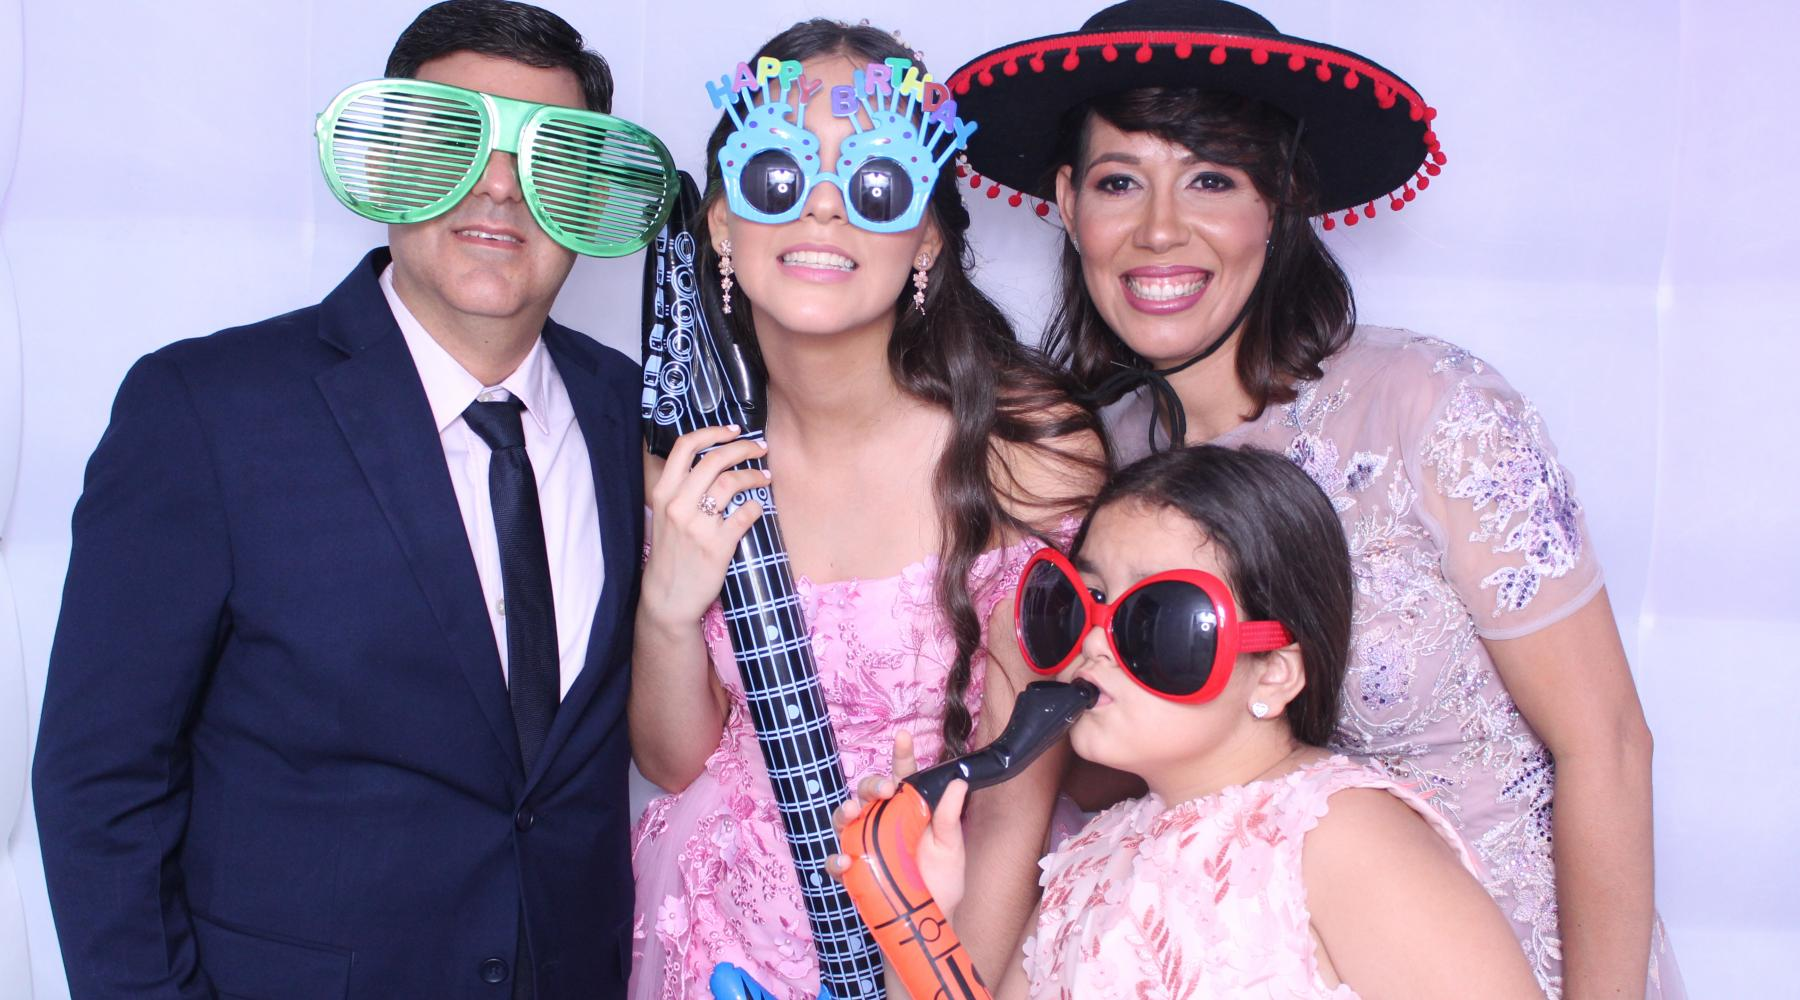 photo booth republica dominicana - cumple1